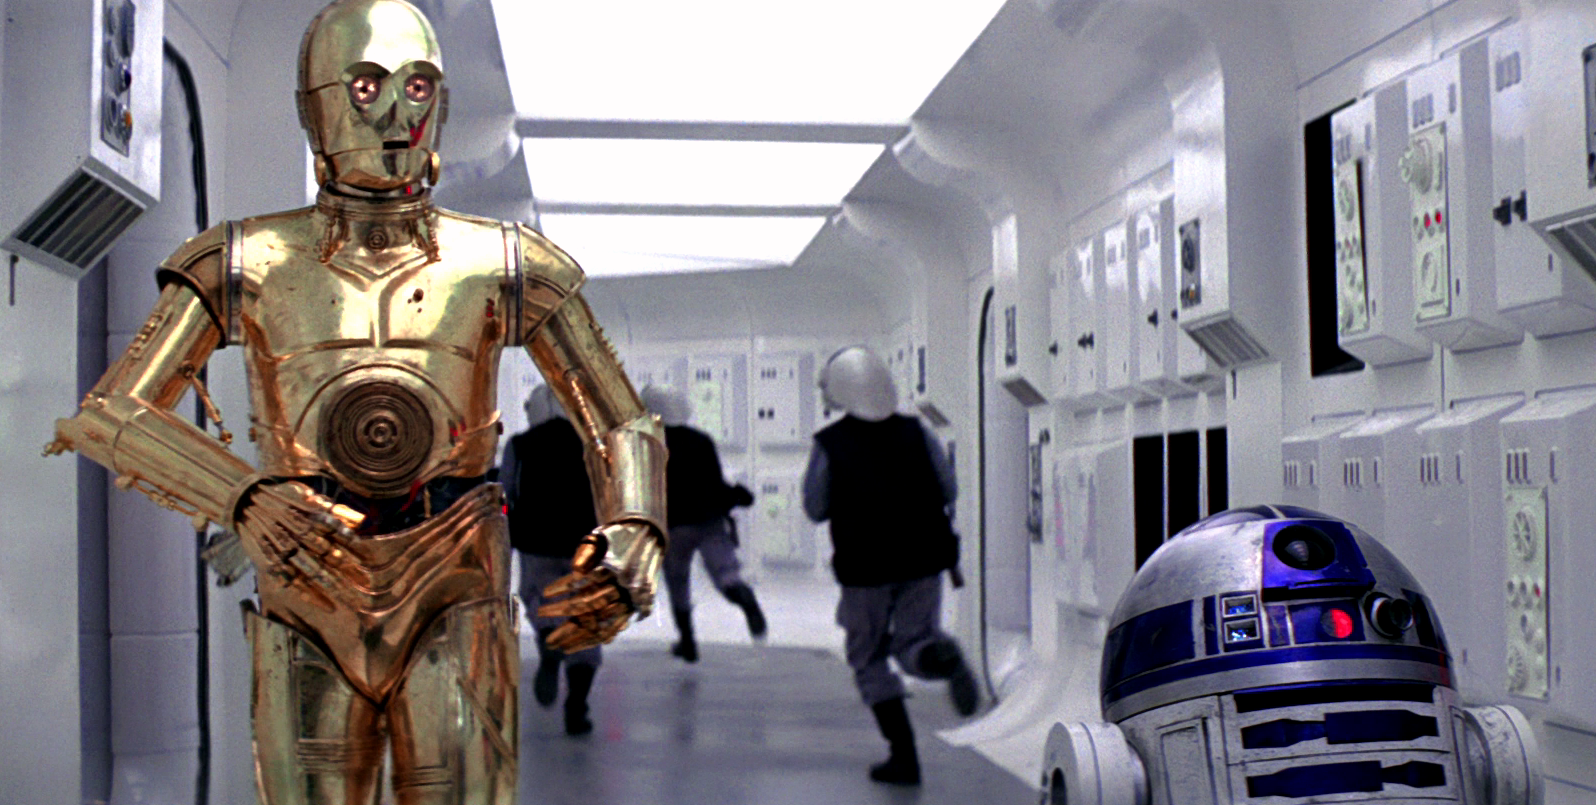 R2d2 And C3po 6 of C-3PO'...